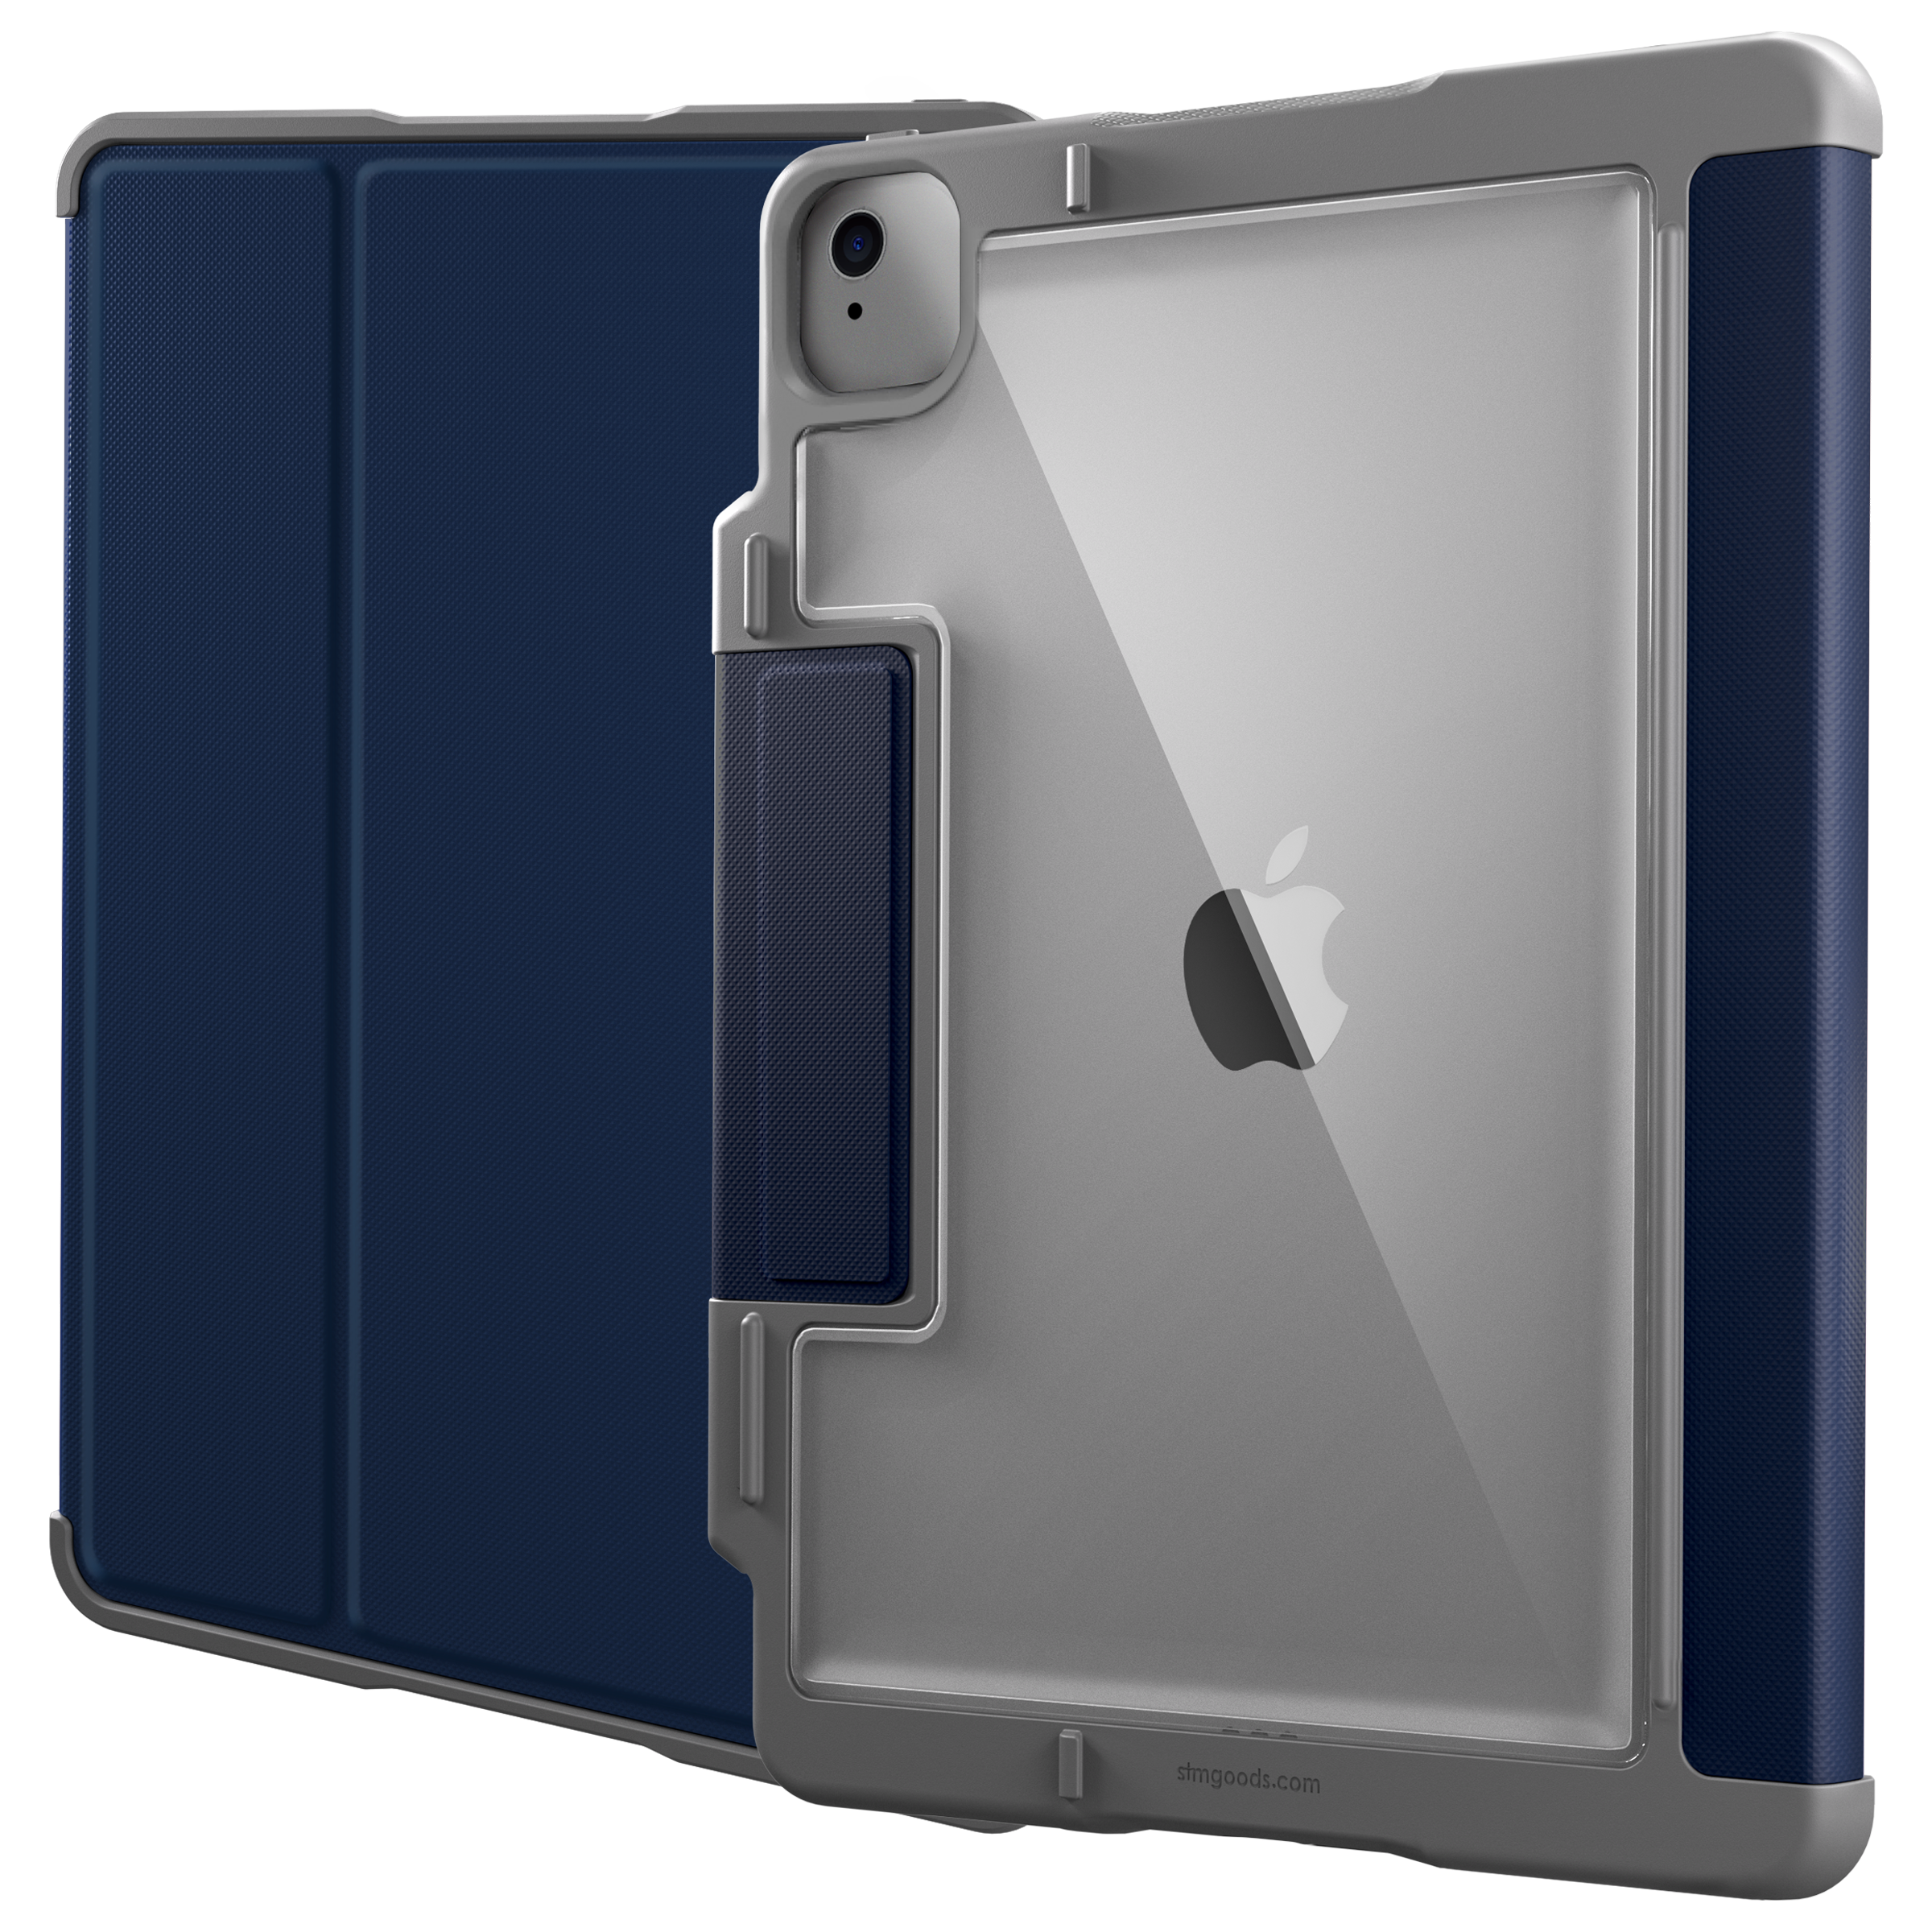 STM Rugged Plus Polycarbonate, Rubberised TPU, Polyurethane Flip Case For iPad Pro 11 Inch (Instant On/Off Cover, STM-222-328KZ-02, Blue)_1